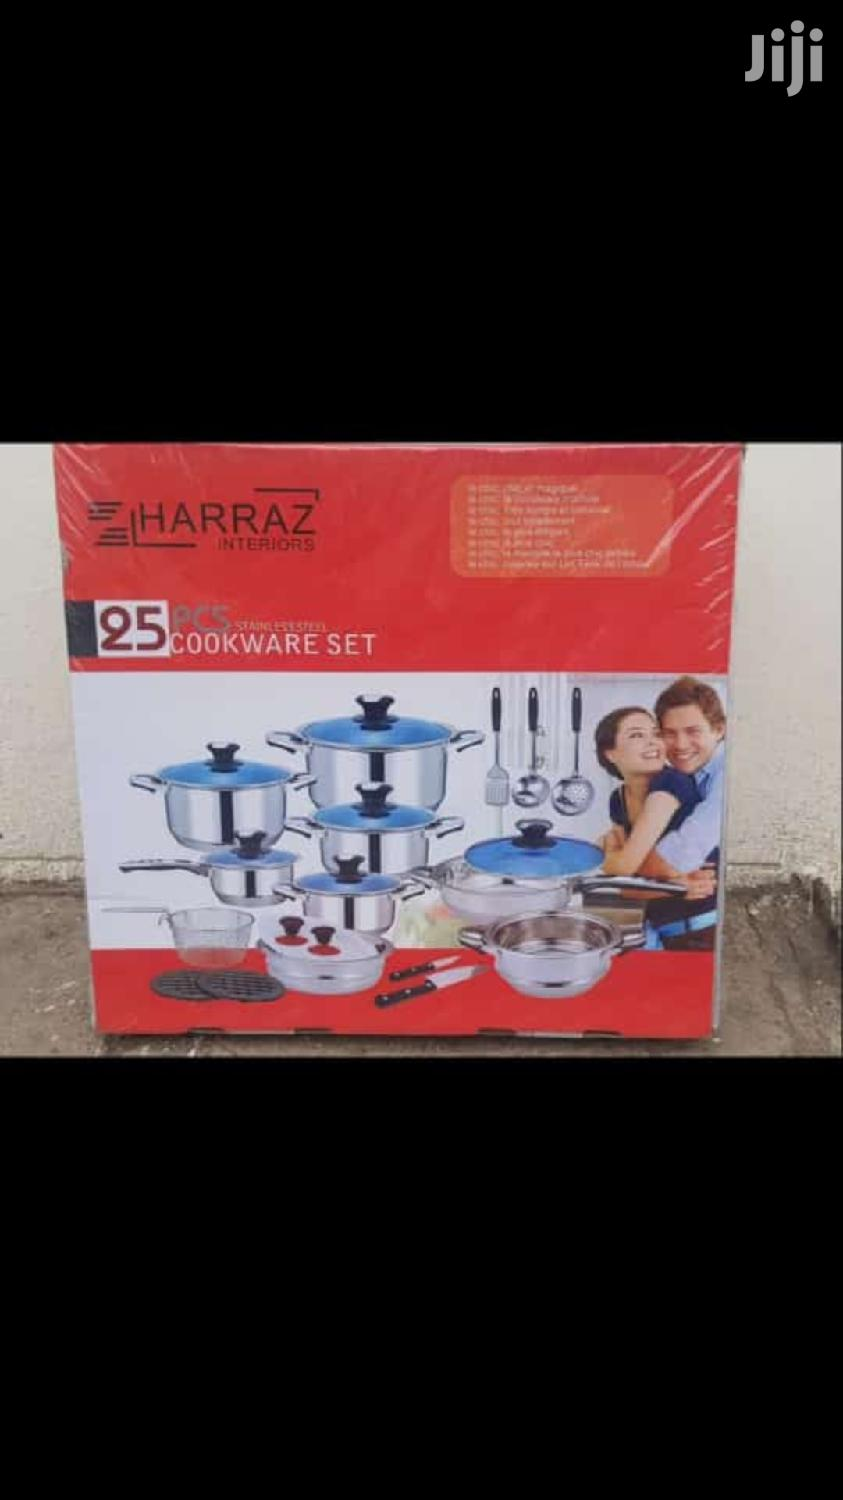 Stainless Steel Sufuria/25pc Cookerware/Induction Cooking Pot